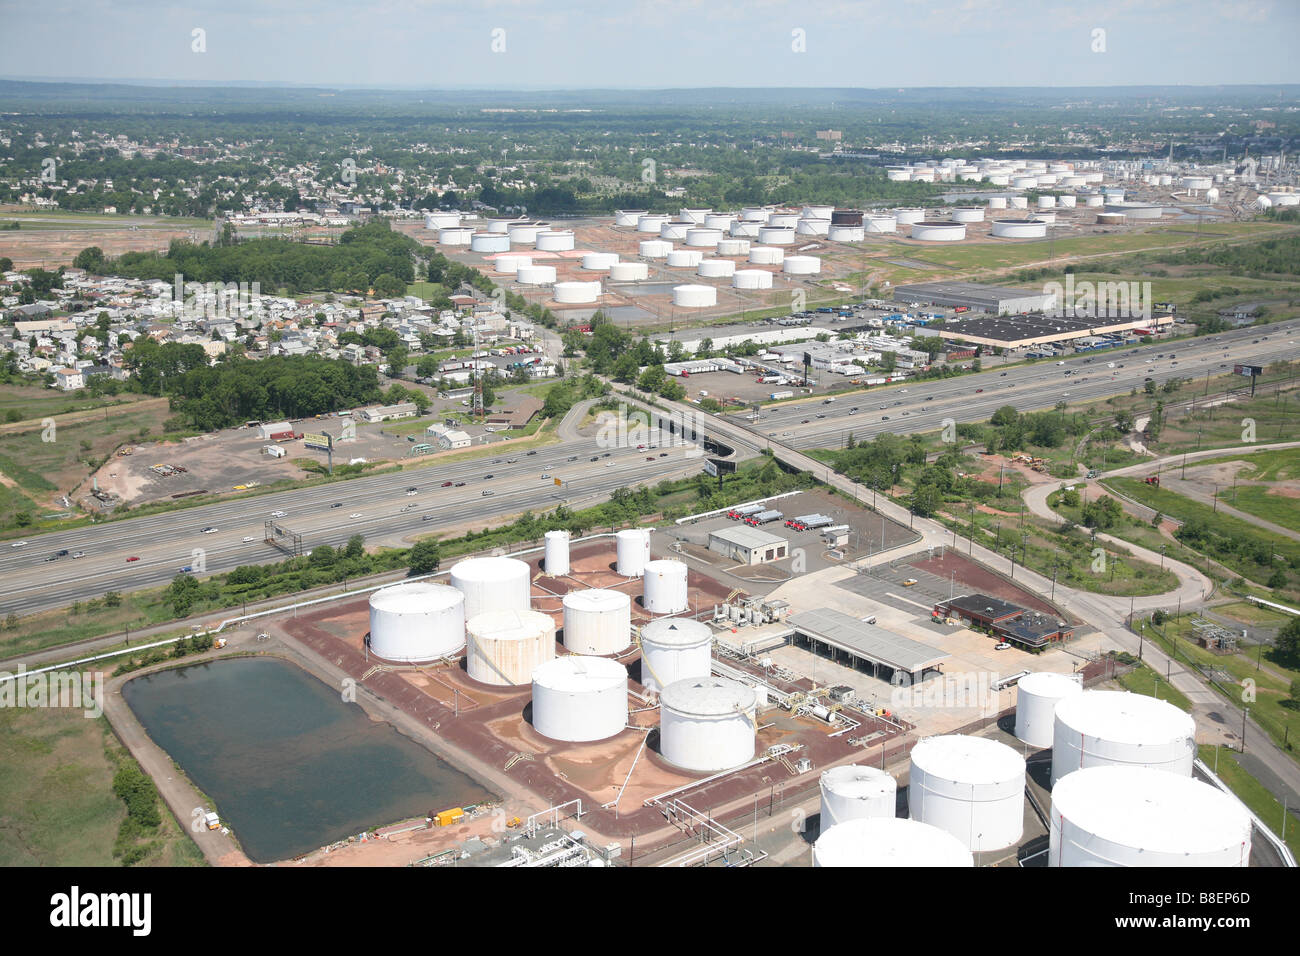 Beau Aerial View Of Oil Storage Tanks In Linden NJ, USA, United States Of America